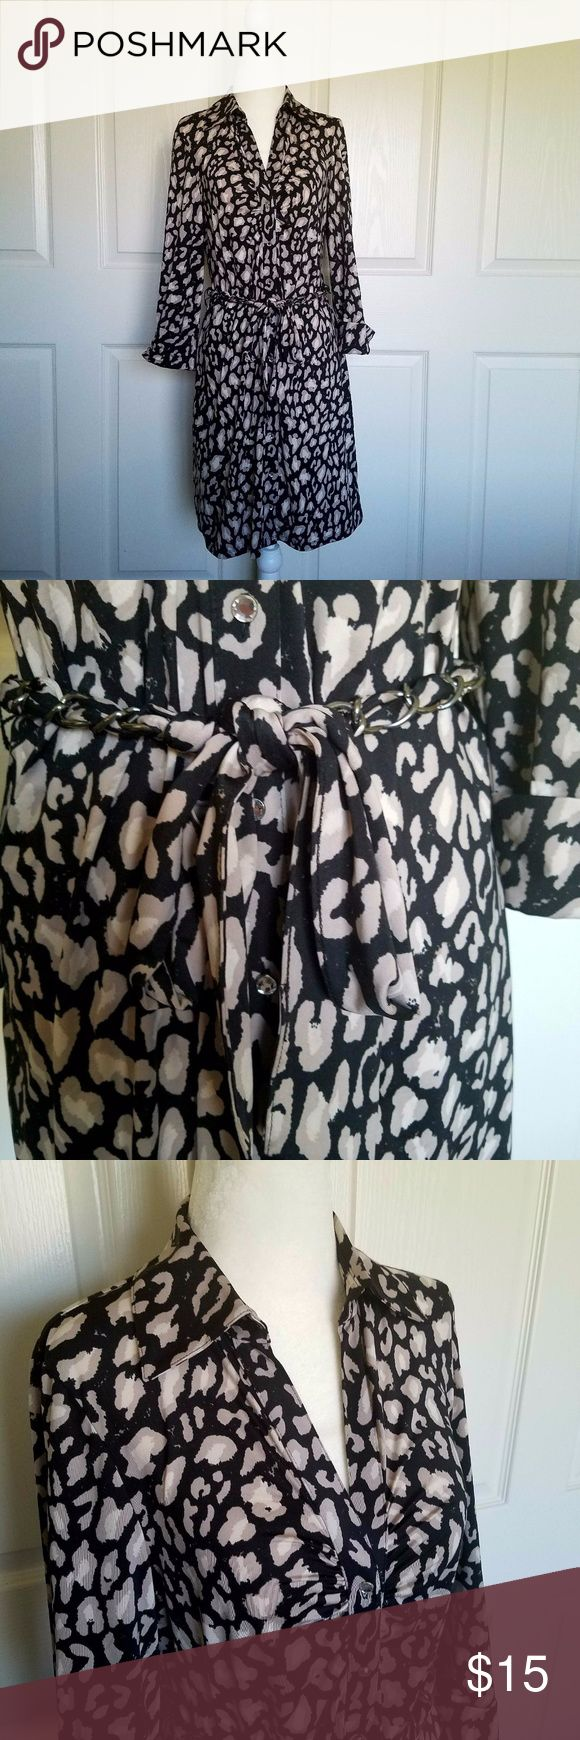 """INC International Concepts Petite Shirt Dress INC International Concepts Shirt Dress Petite M Animal Print Belted 3/4 Sleeve  Shoulder to shoulder - 15"""" Total length - 36"""" Bust (Armpit to armpit) - 18"""" Sleeve length - 19""""  - No apparent rips, holes, or stains - 92% Polyester, 8% Spandex - Rhinestone buttons - Belt is removable - Machine washable  **Measurements are taken with garment laying flat, and as exact as possible. INC International Concepts Dresses"""